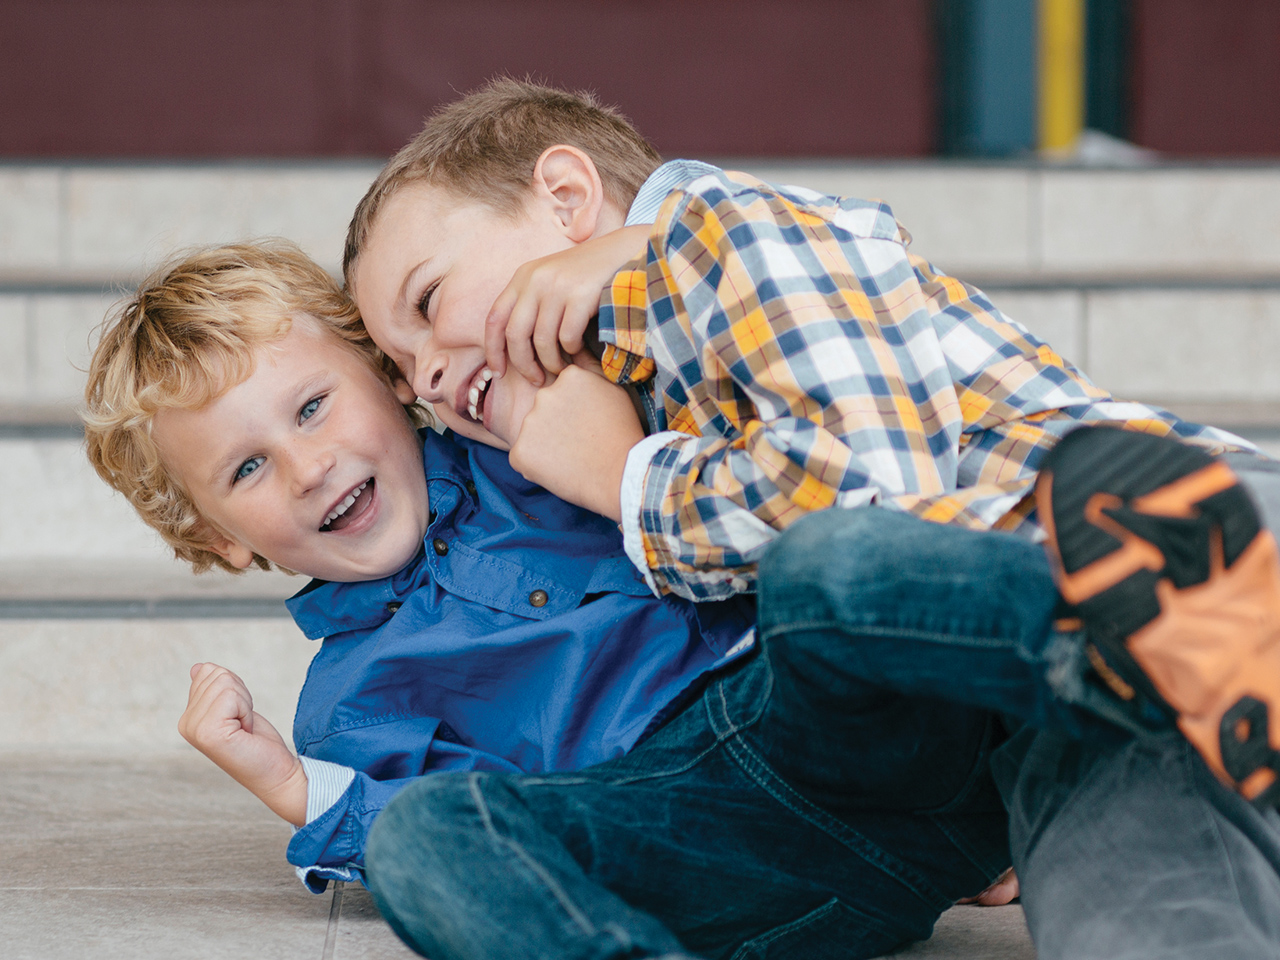 two boys play fighting on the ground laughing